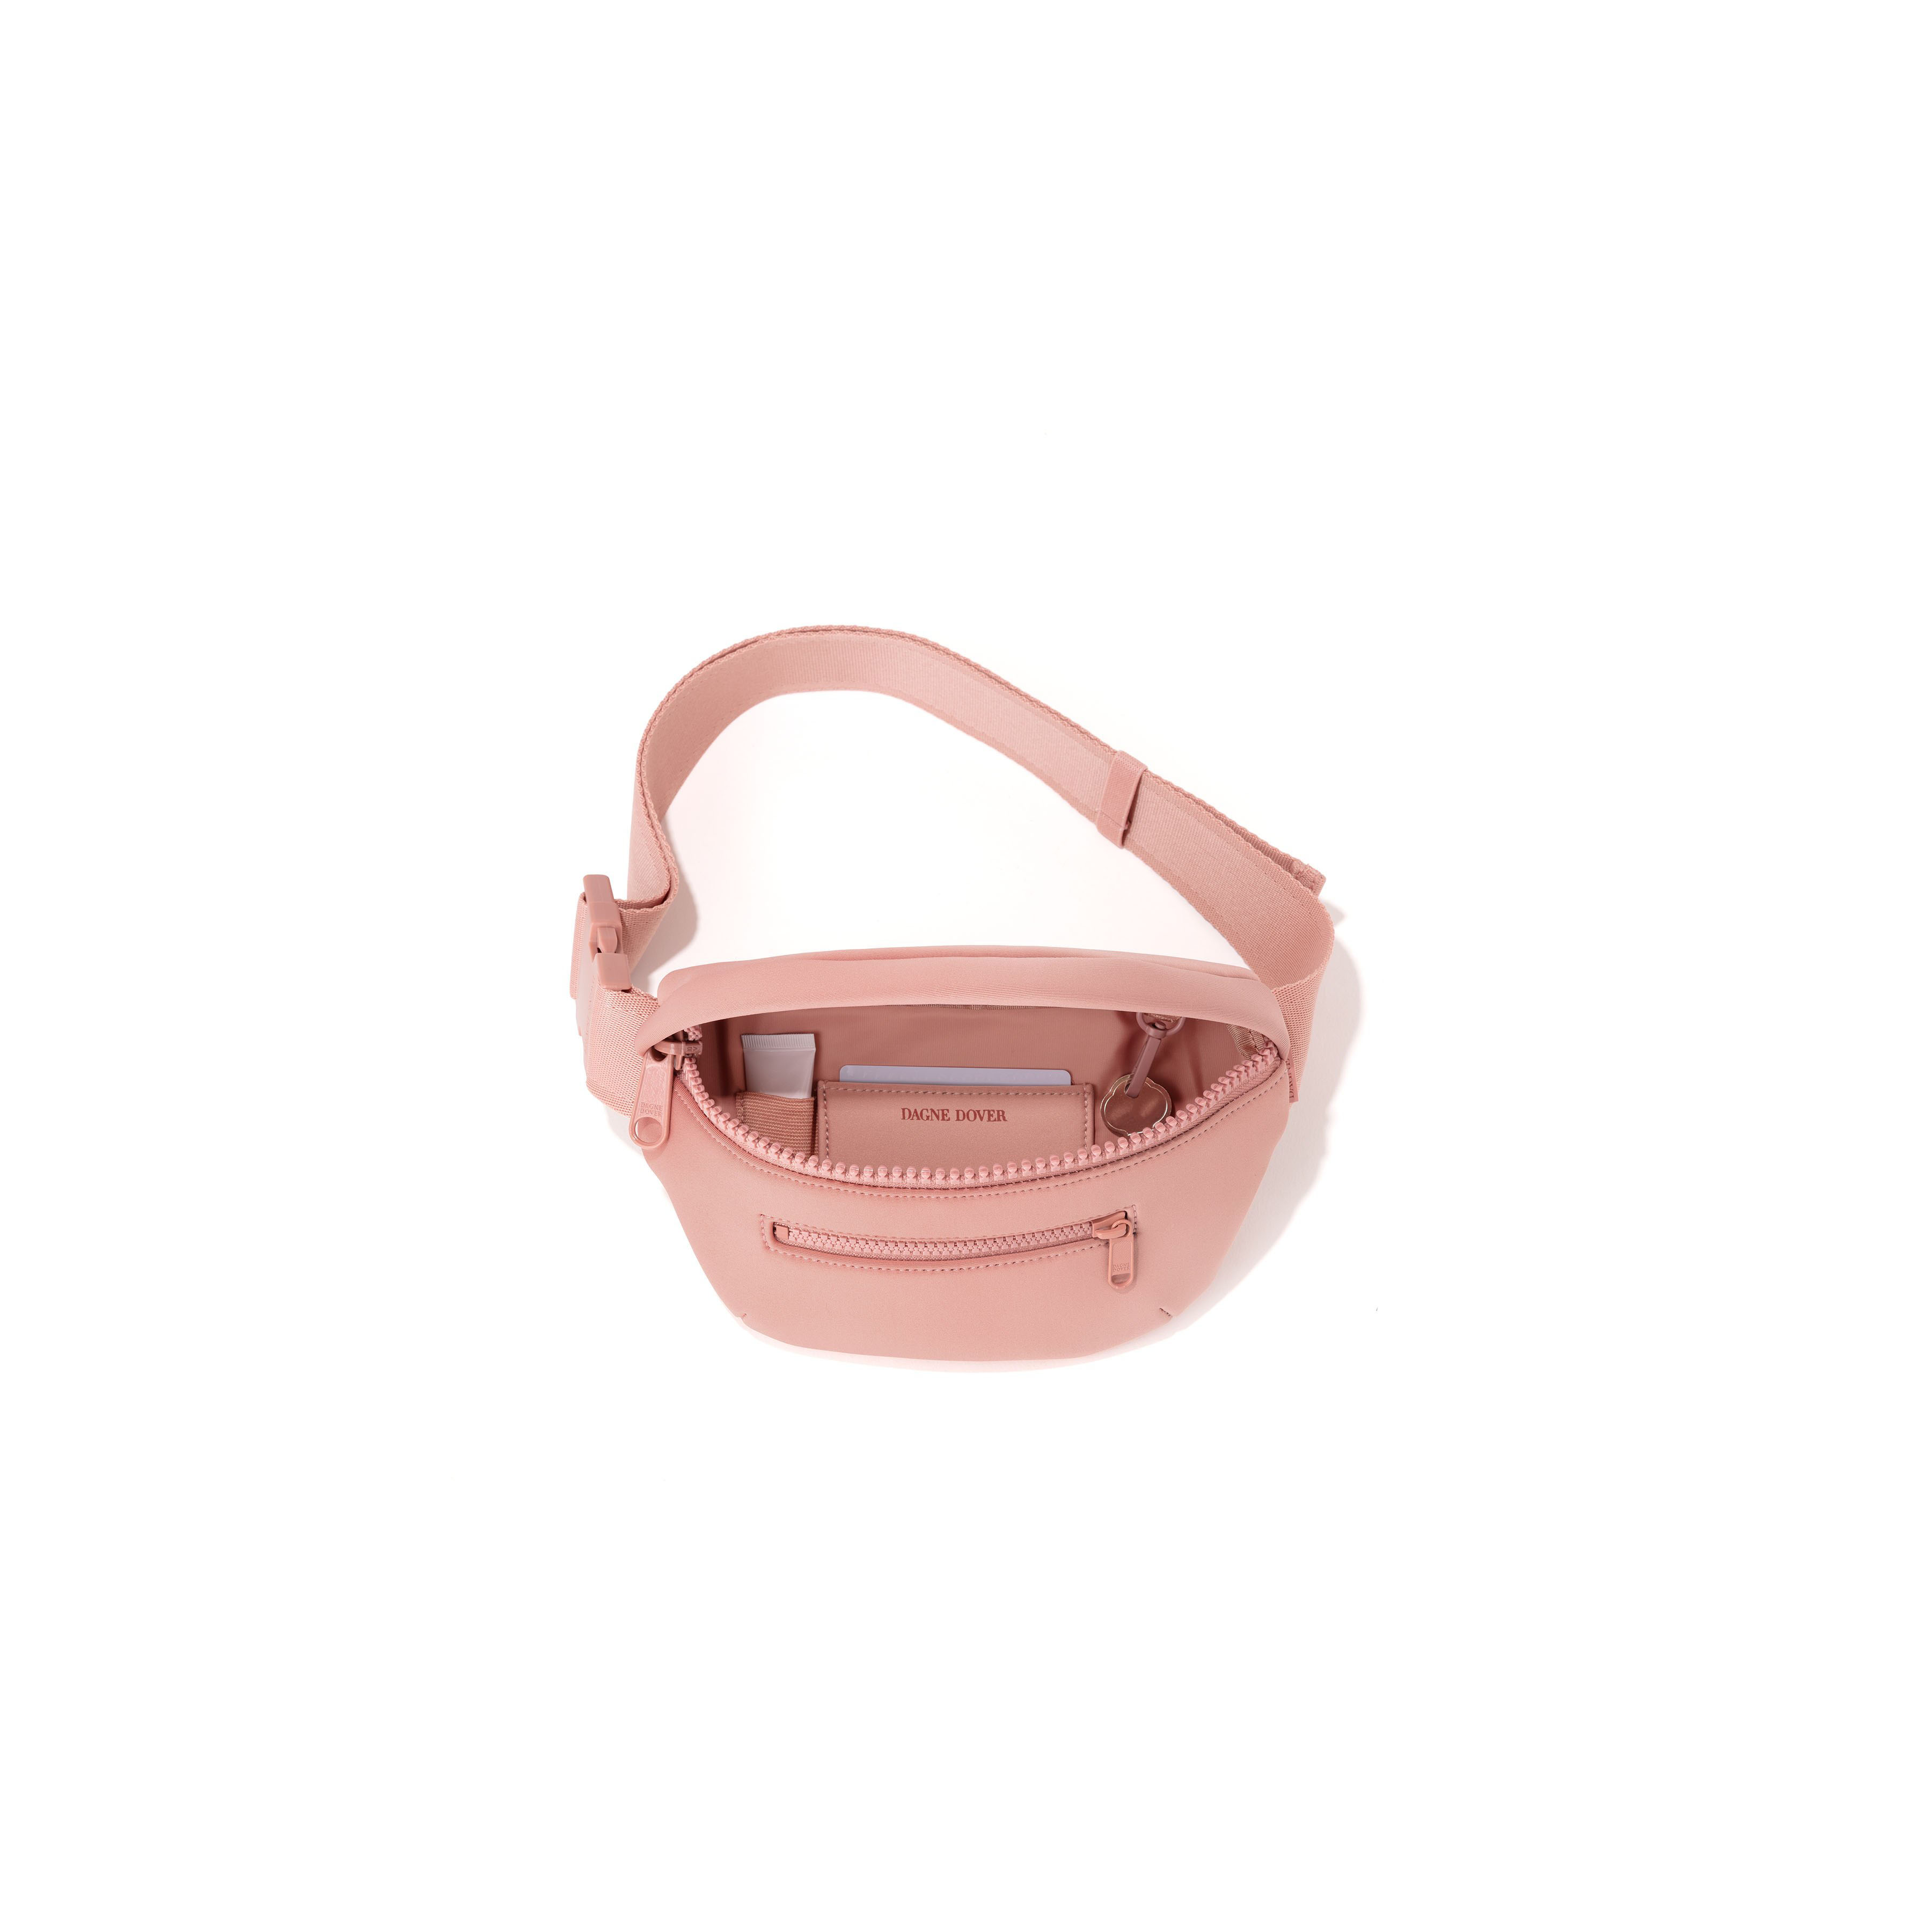 54d063b762c6 Dagne Dover Spring Summer Bag Collection 2019 | Real Simple